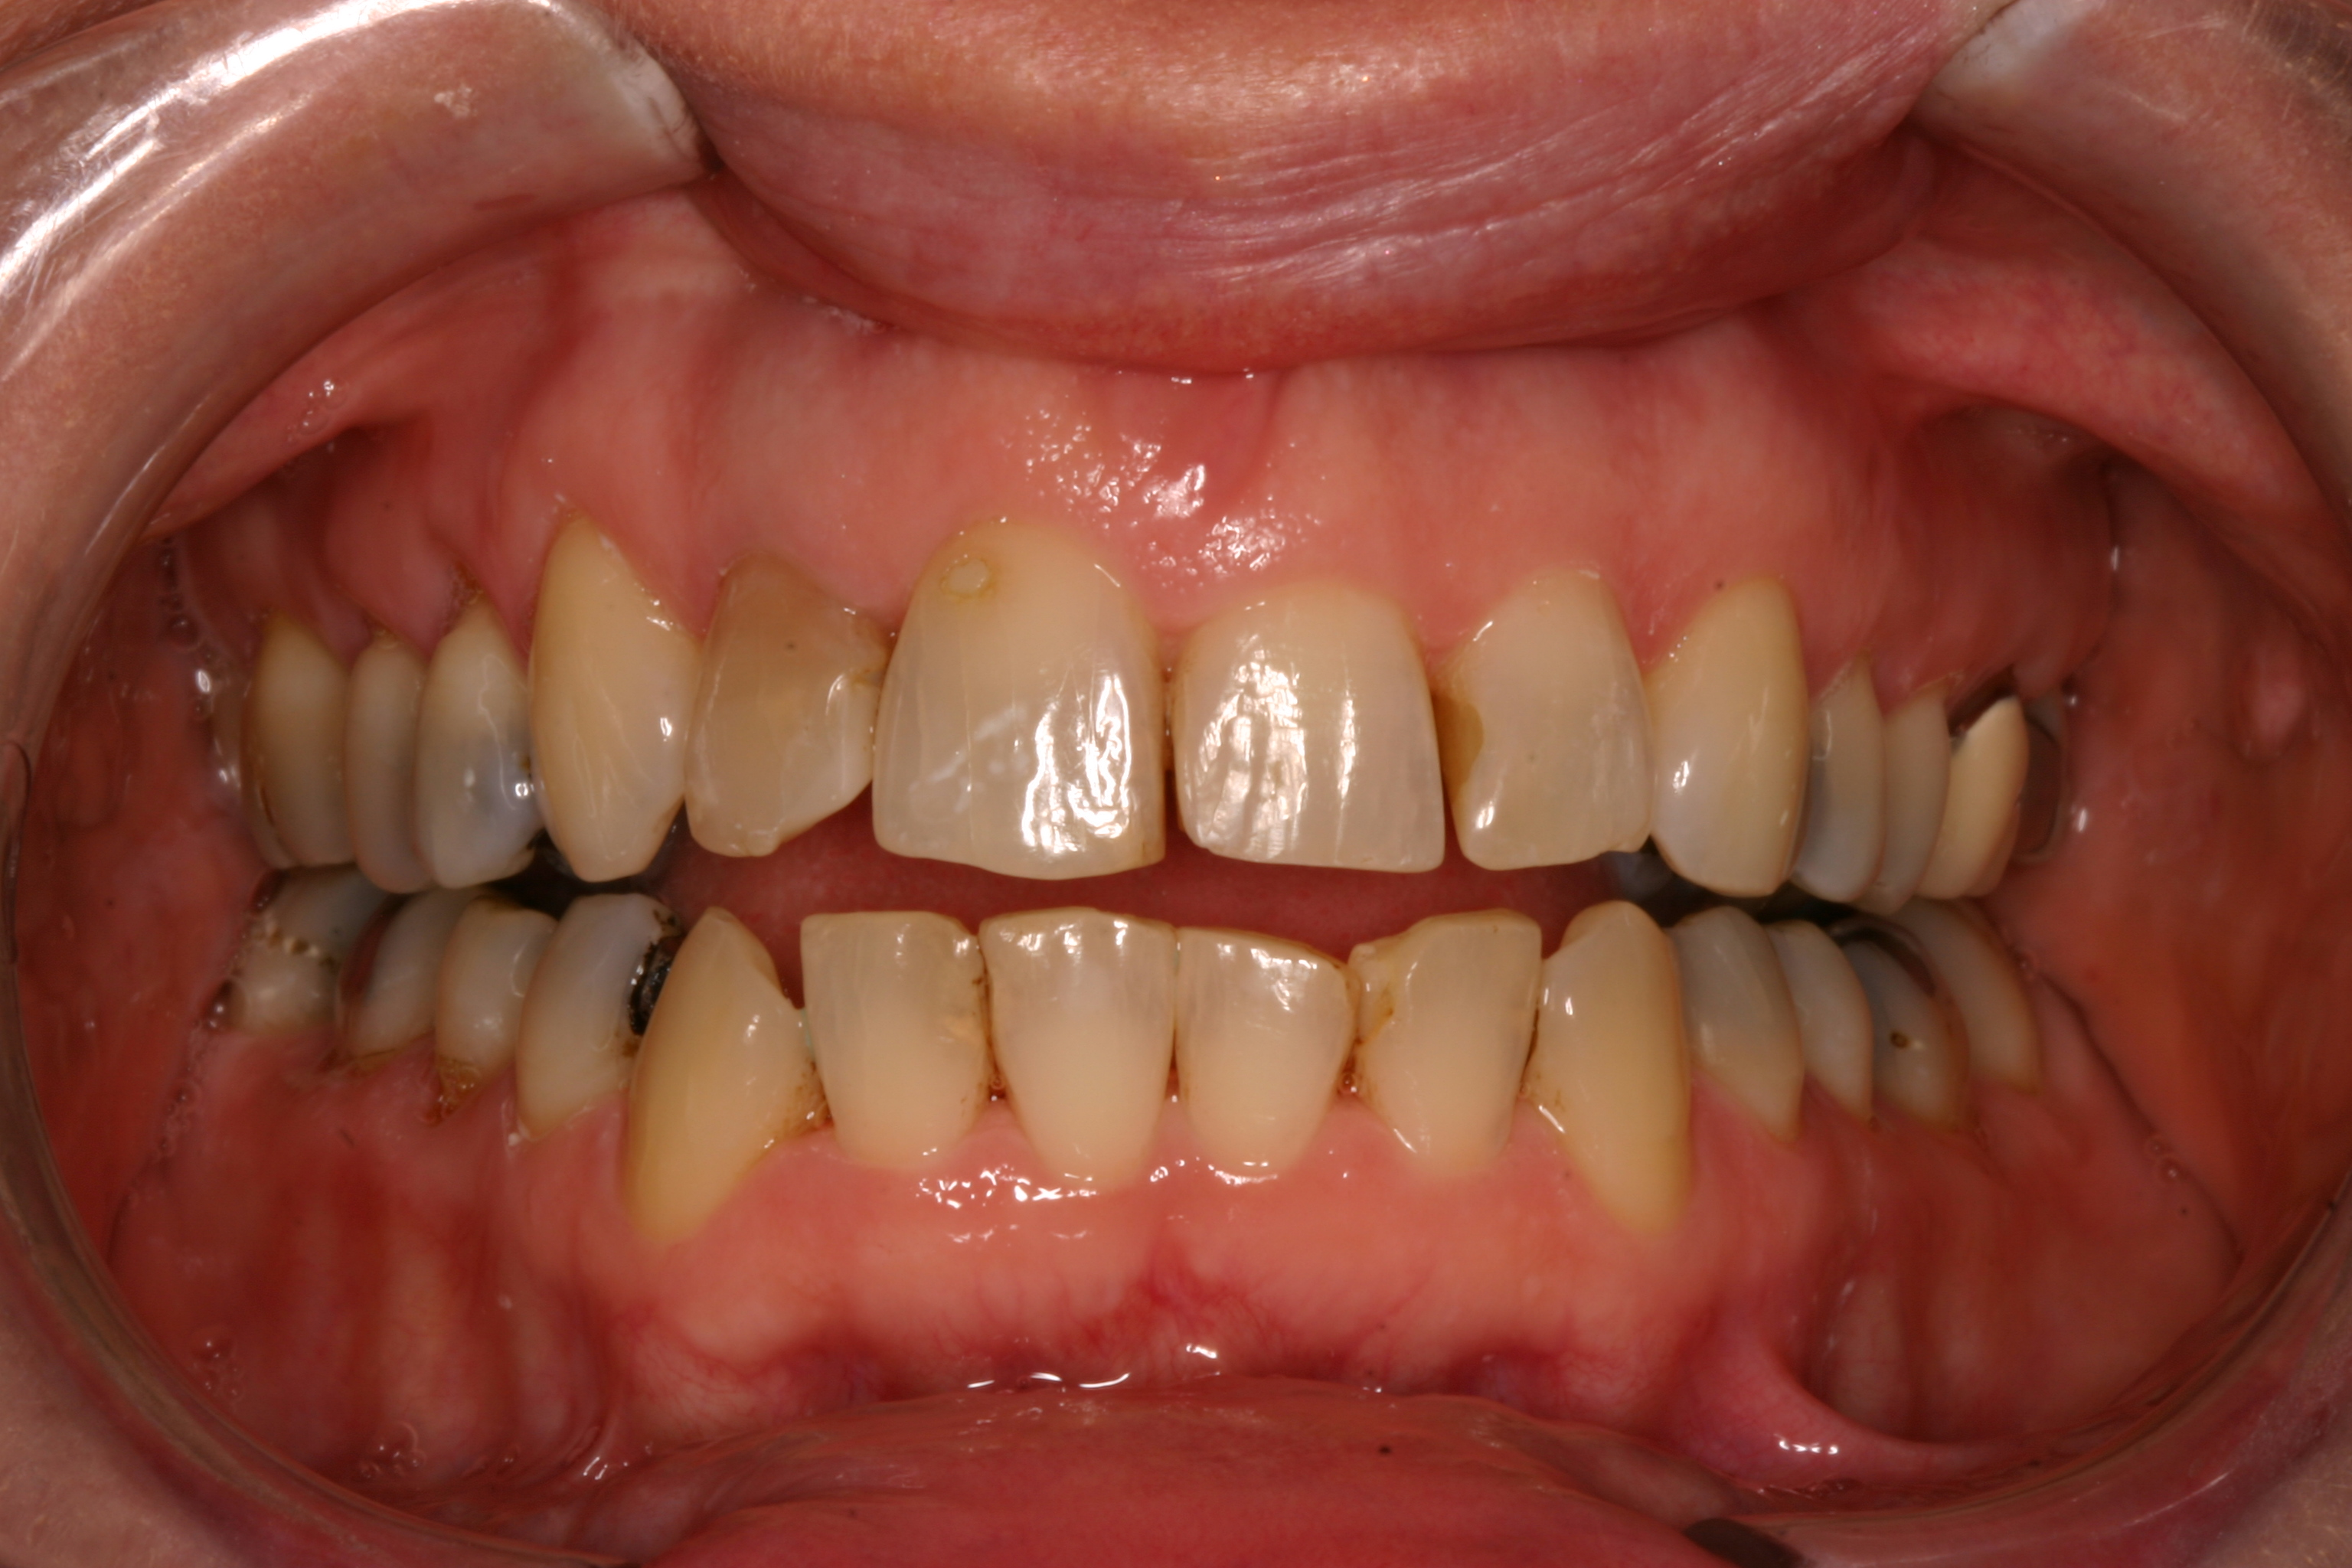 Dr. Bader restores smiles using crowns. Contact us at Aesthetic Smiles for your consultation.